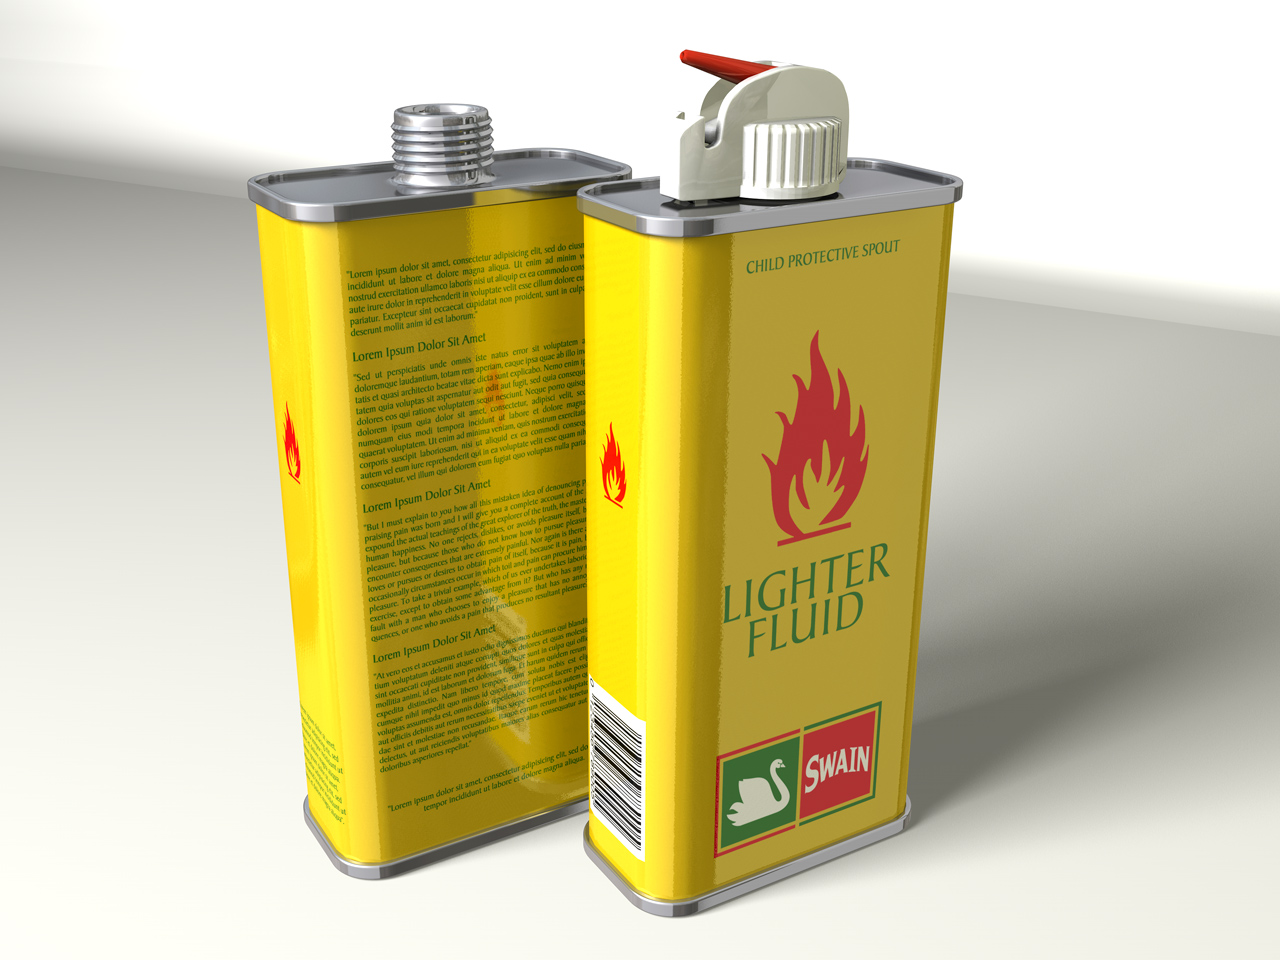 How to refill the lighter fluid in a.